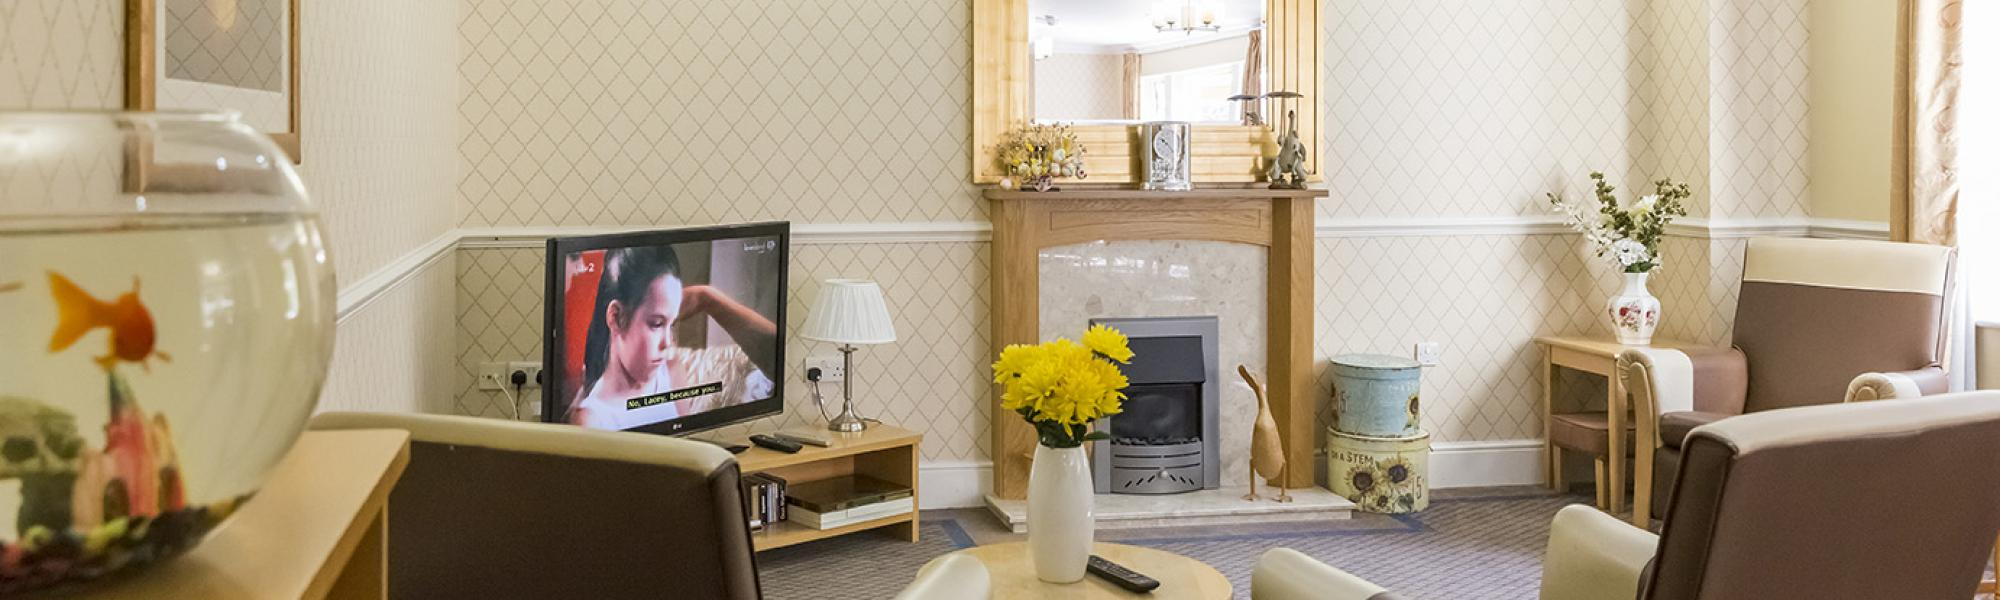 Living Rooms At Cookridge Court. Brighterkind Cookridge Court Care Home In  West Yorkshire